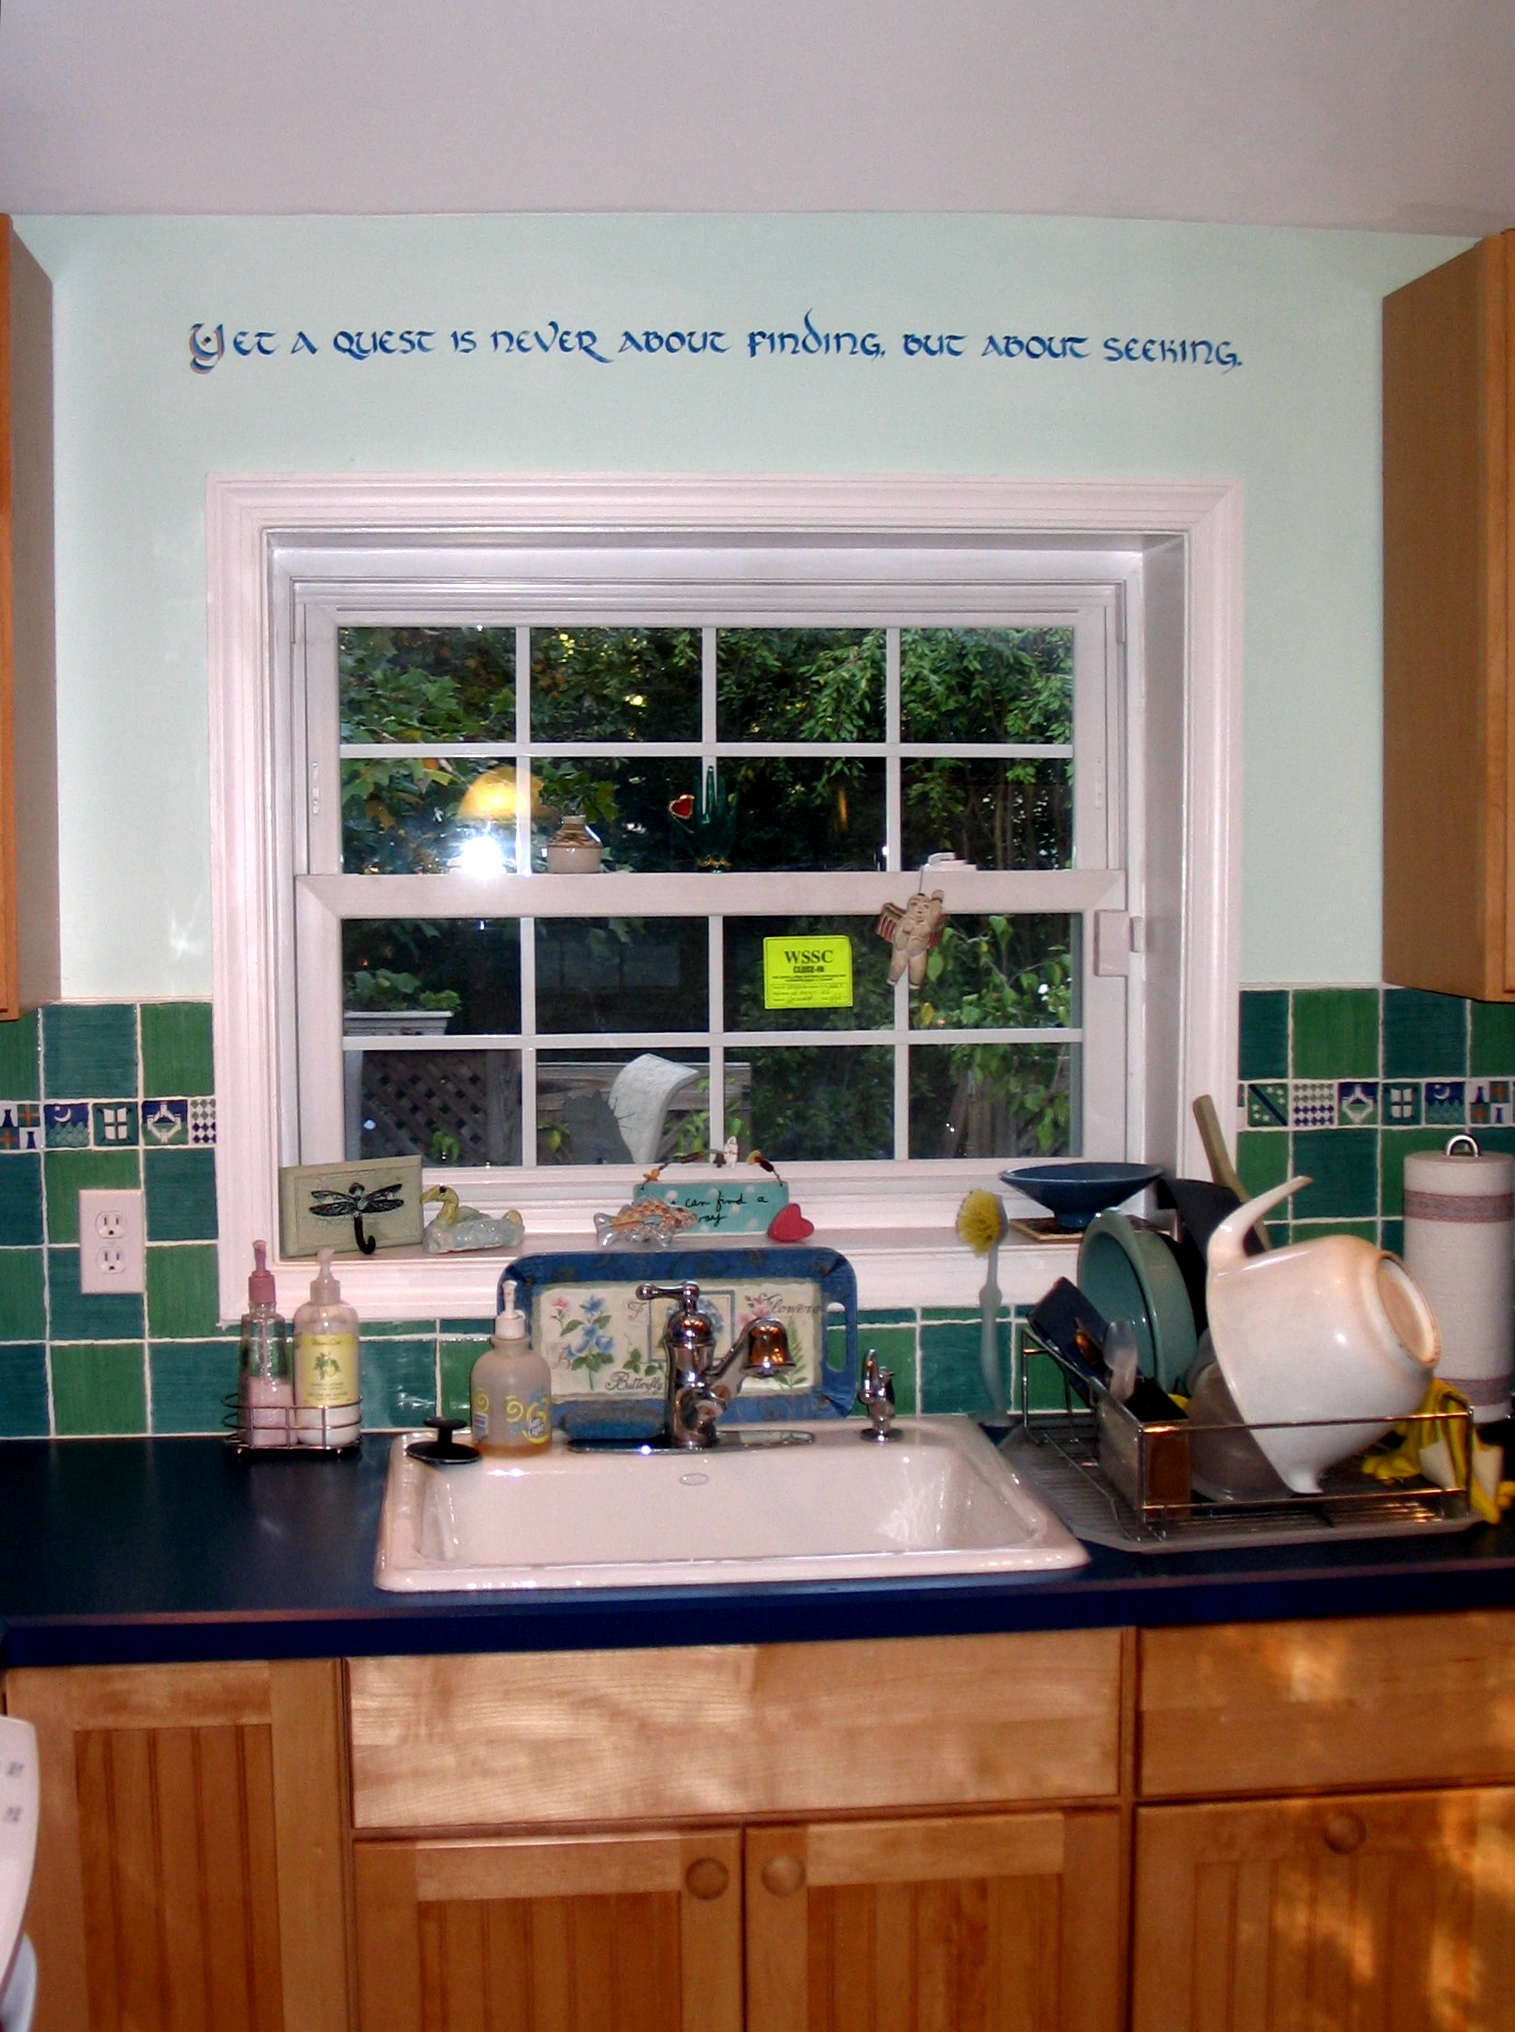 """Calligraphic inscription above the kitchen window of a Sligo Park Hills house: """"Yet a quest is never about finding, but about seeking."""""""